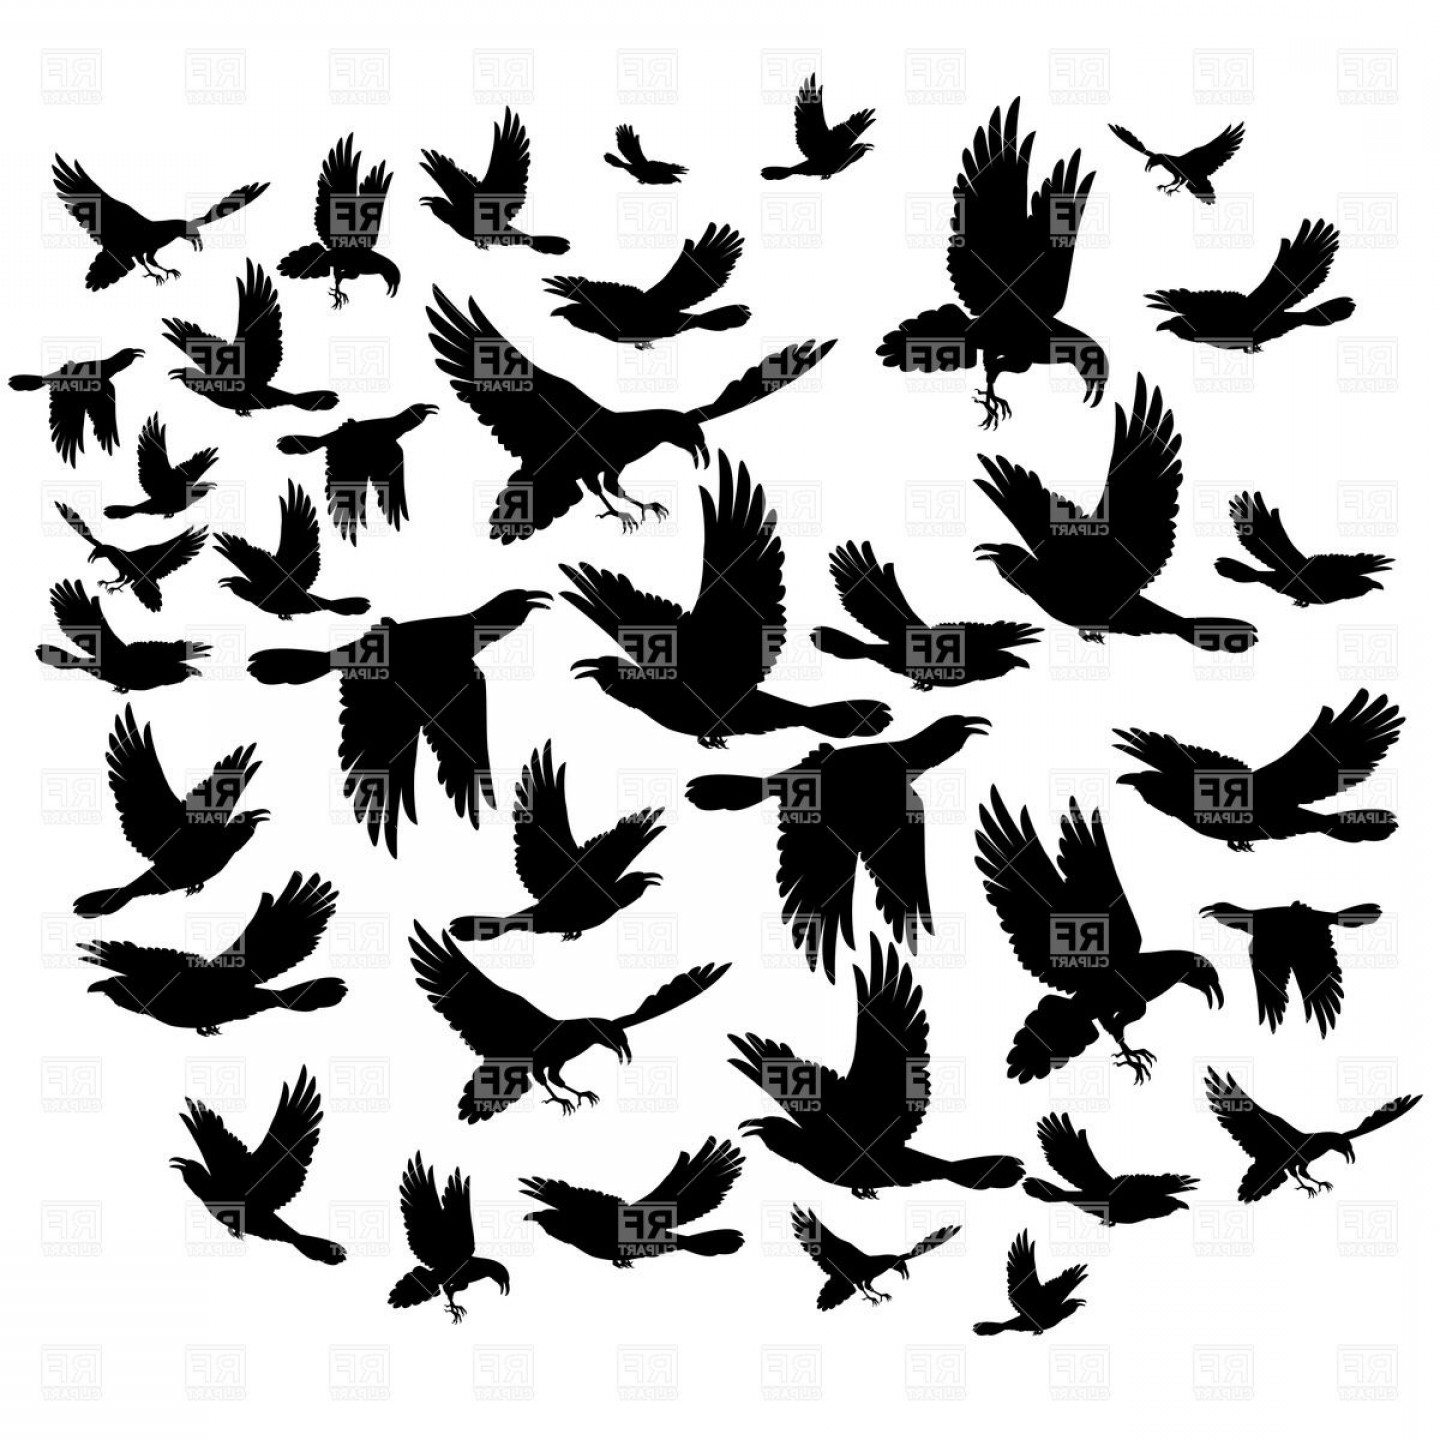 Bird Flying Vector Art: Silhouettes Of Birds Many Black Flying Crows Vector Clipart